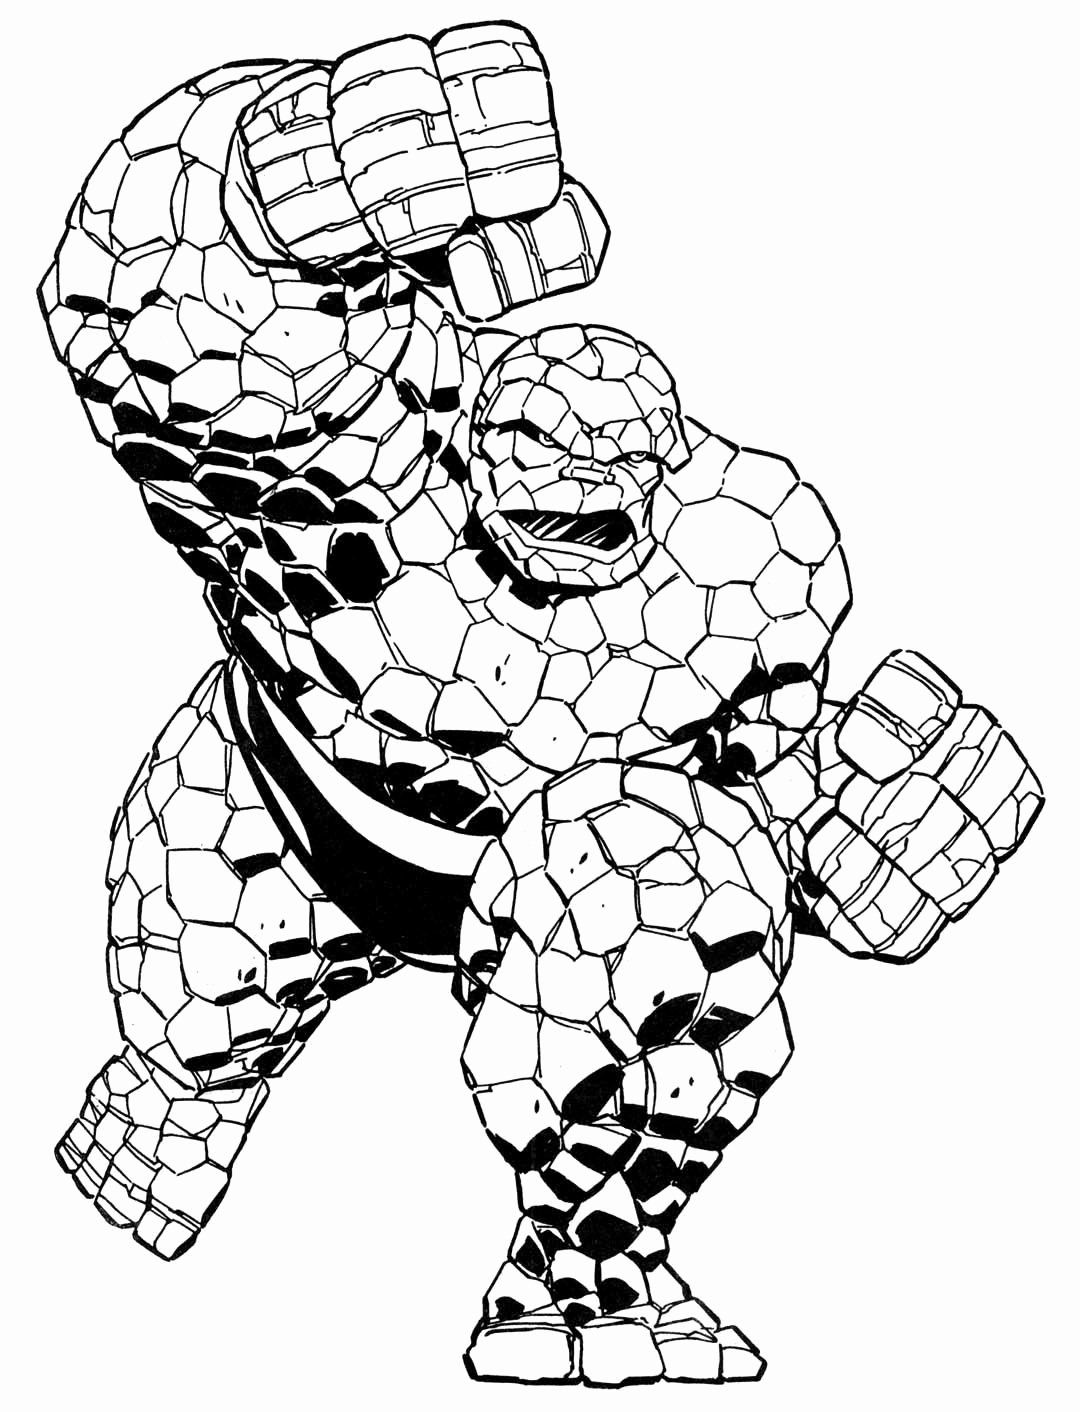 Super Hero Coloring Book Awesome Coloring Book Marvel Super Heroes Marvel Coloring Pages In 2020 Superhero Coloring Marvel Coloring Superhero Coloring Pages